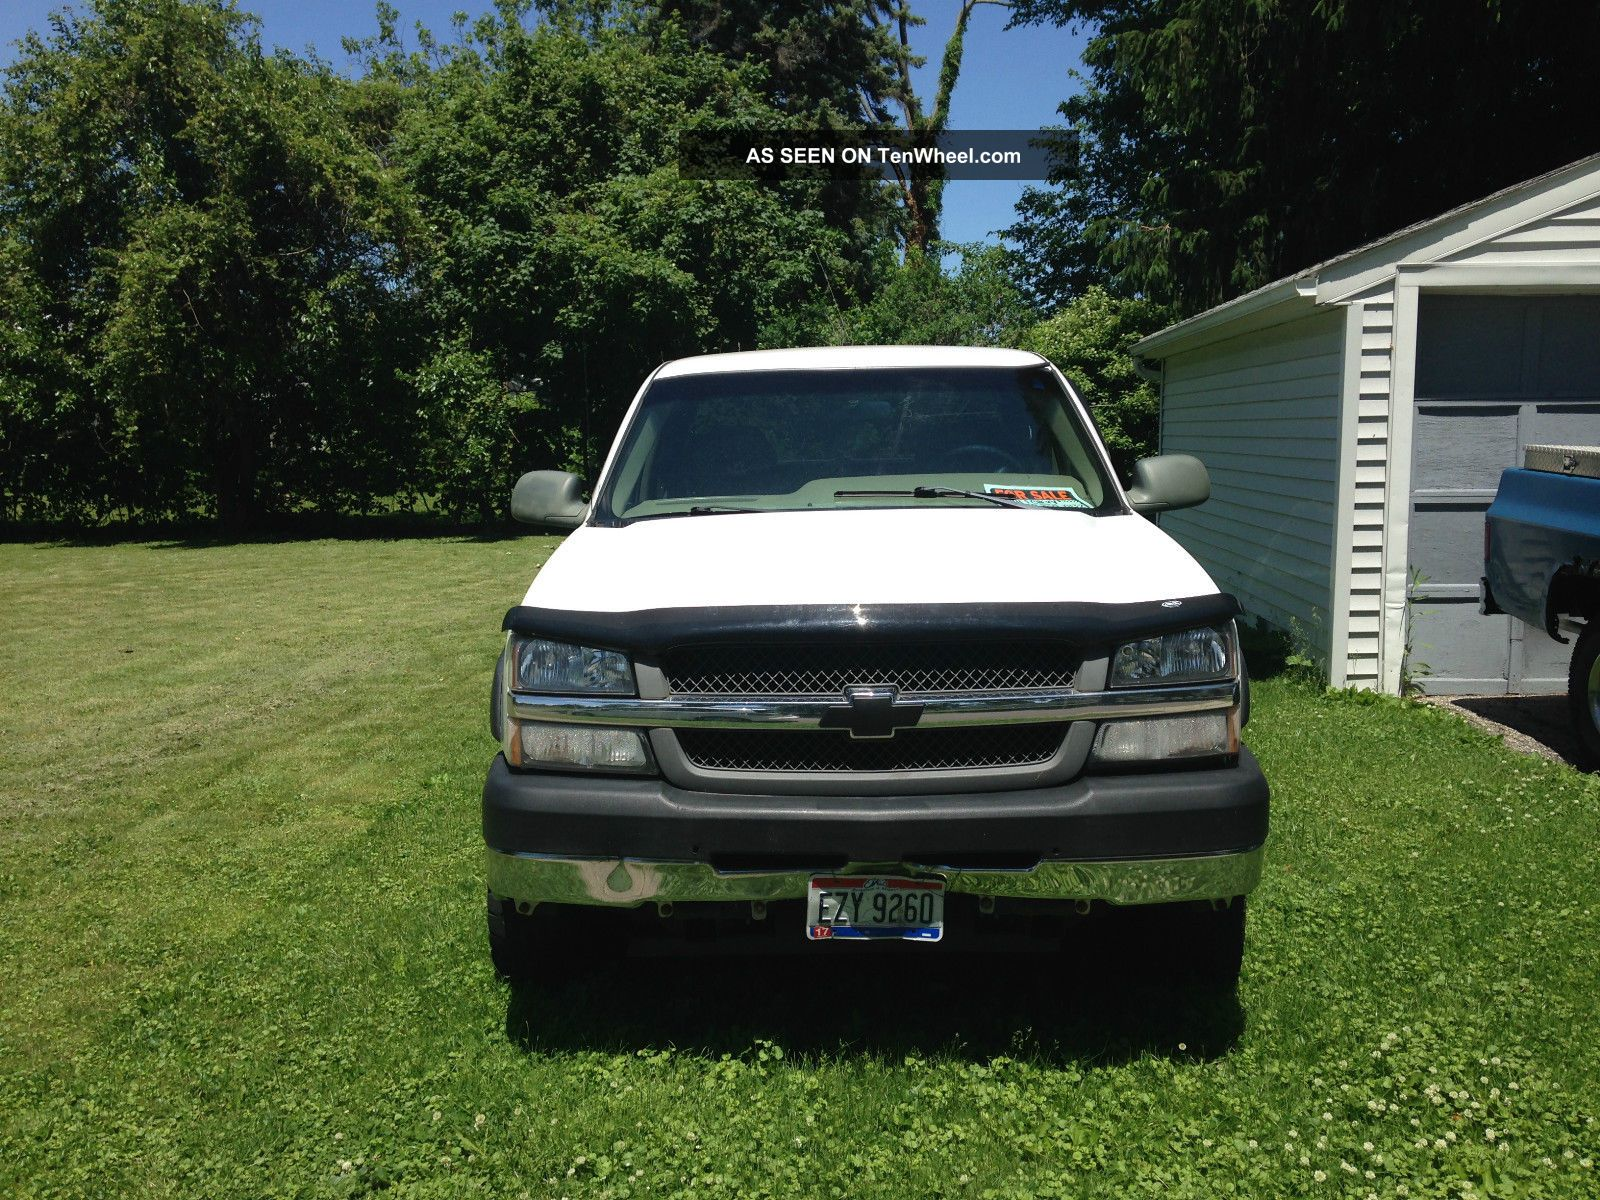 2004 Chevrolet Silverado 2500 Pick Up Truck Extended Bed Crew Cab C/K Pickup 2500 photo